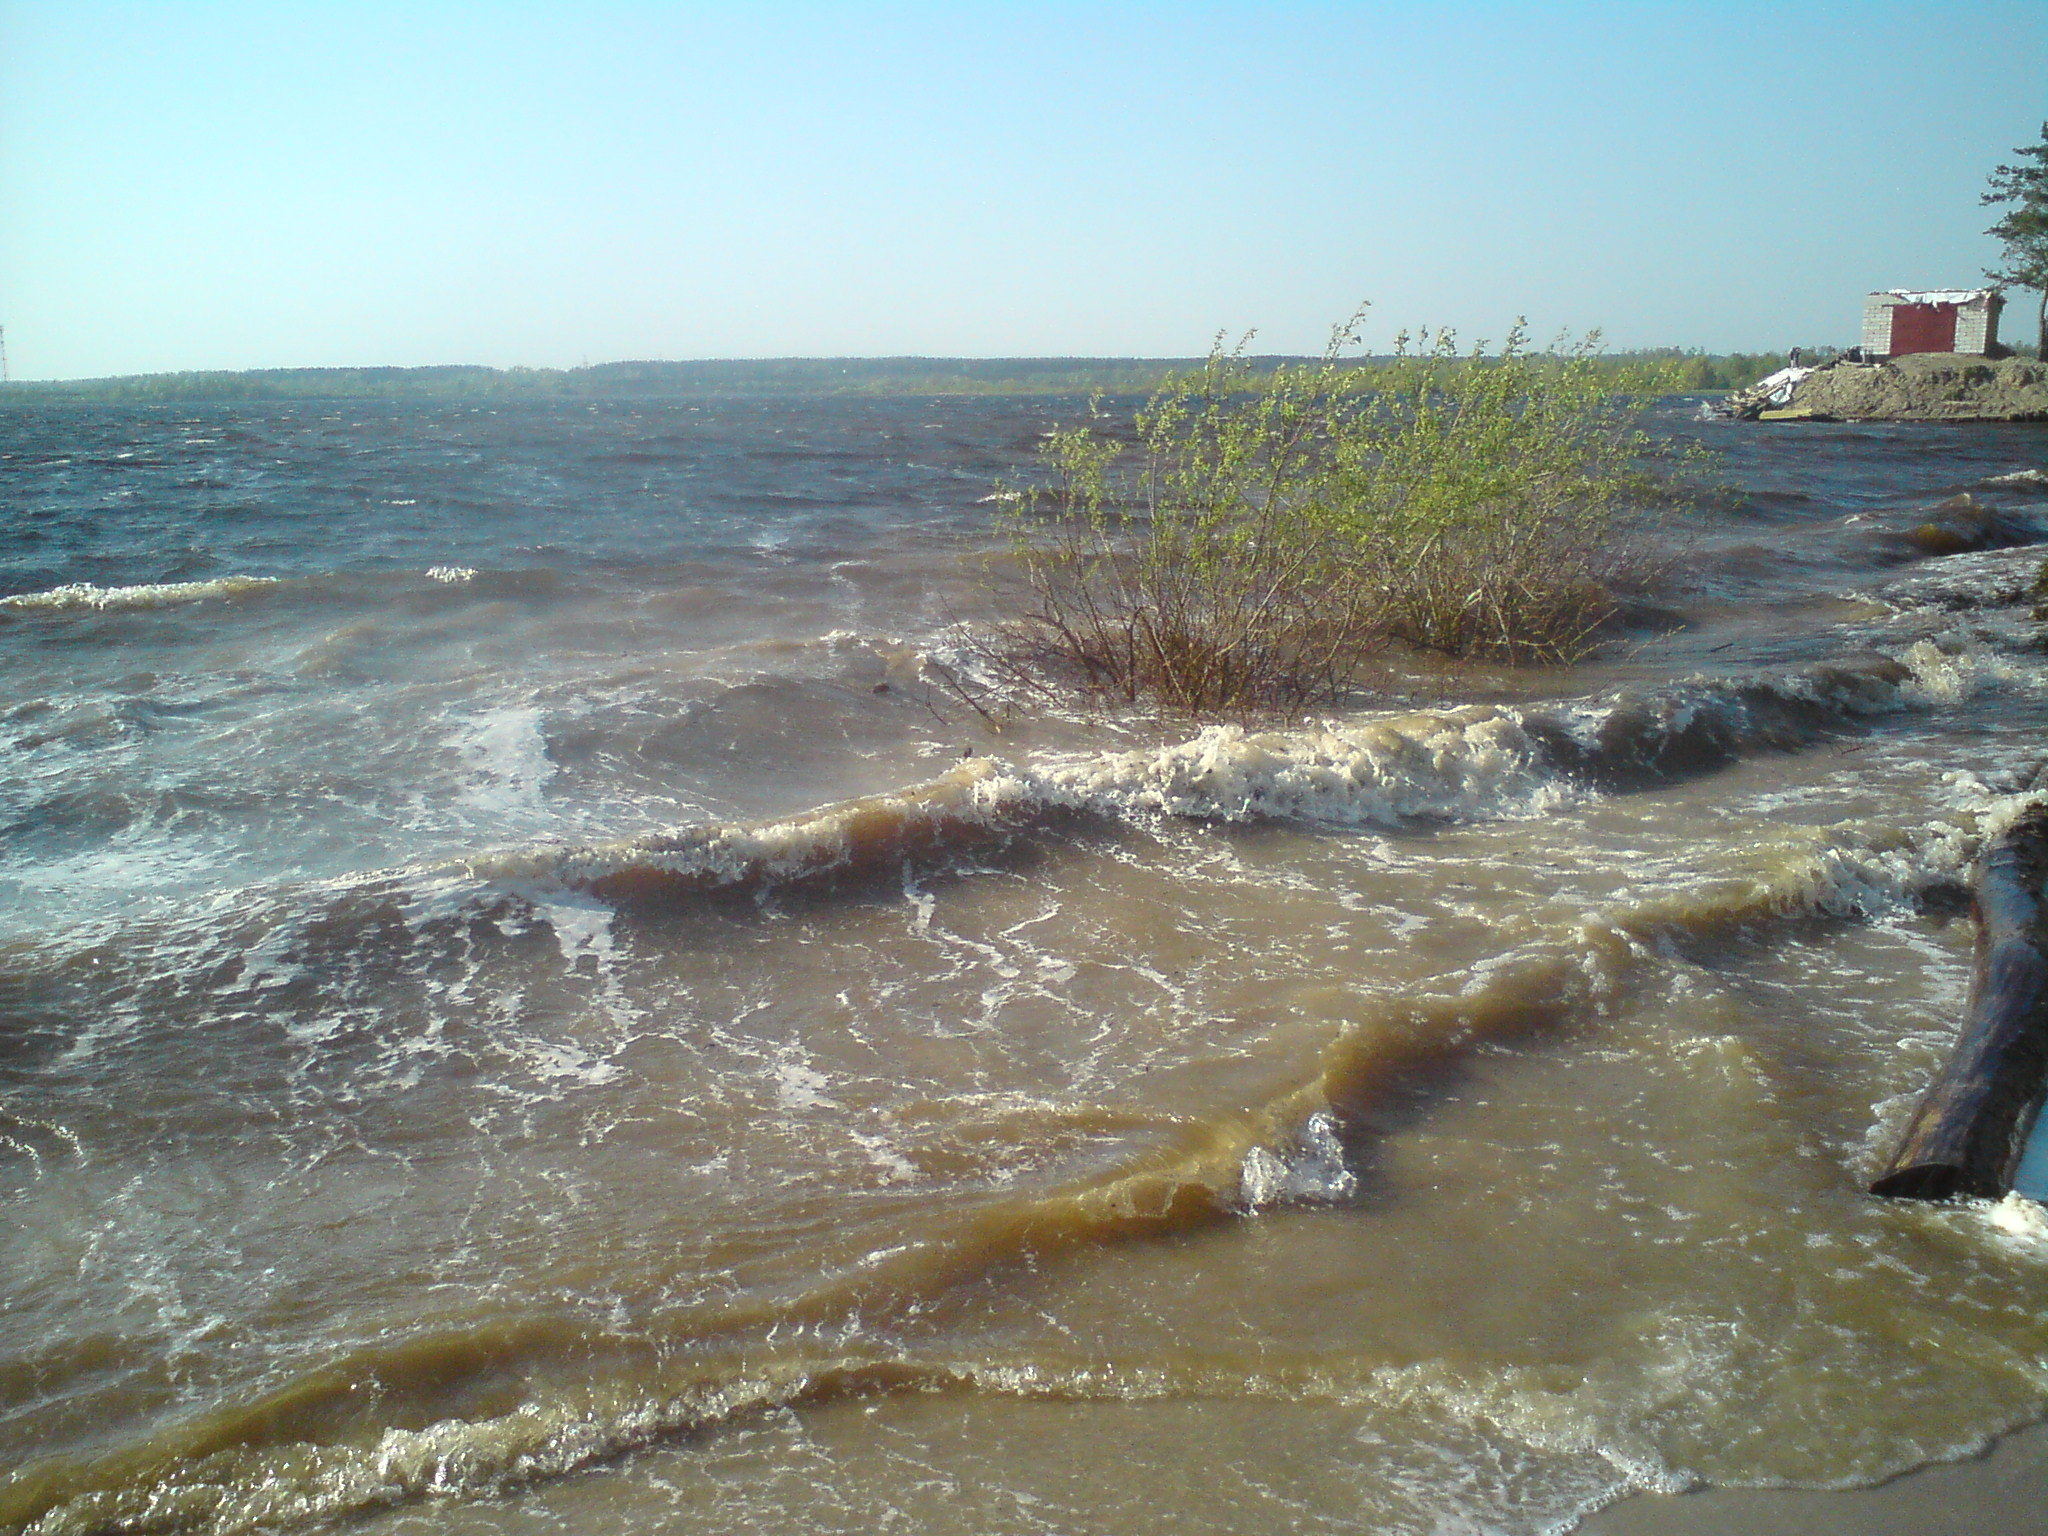 http://www.bryansk.wind.ru/sites/default/files/DSC00681.JPG